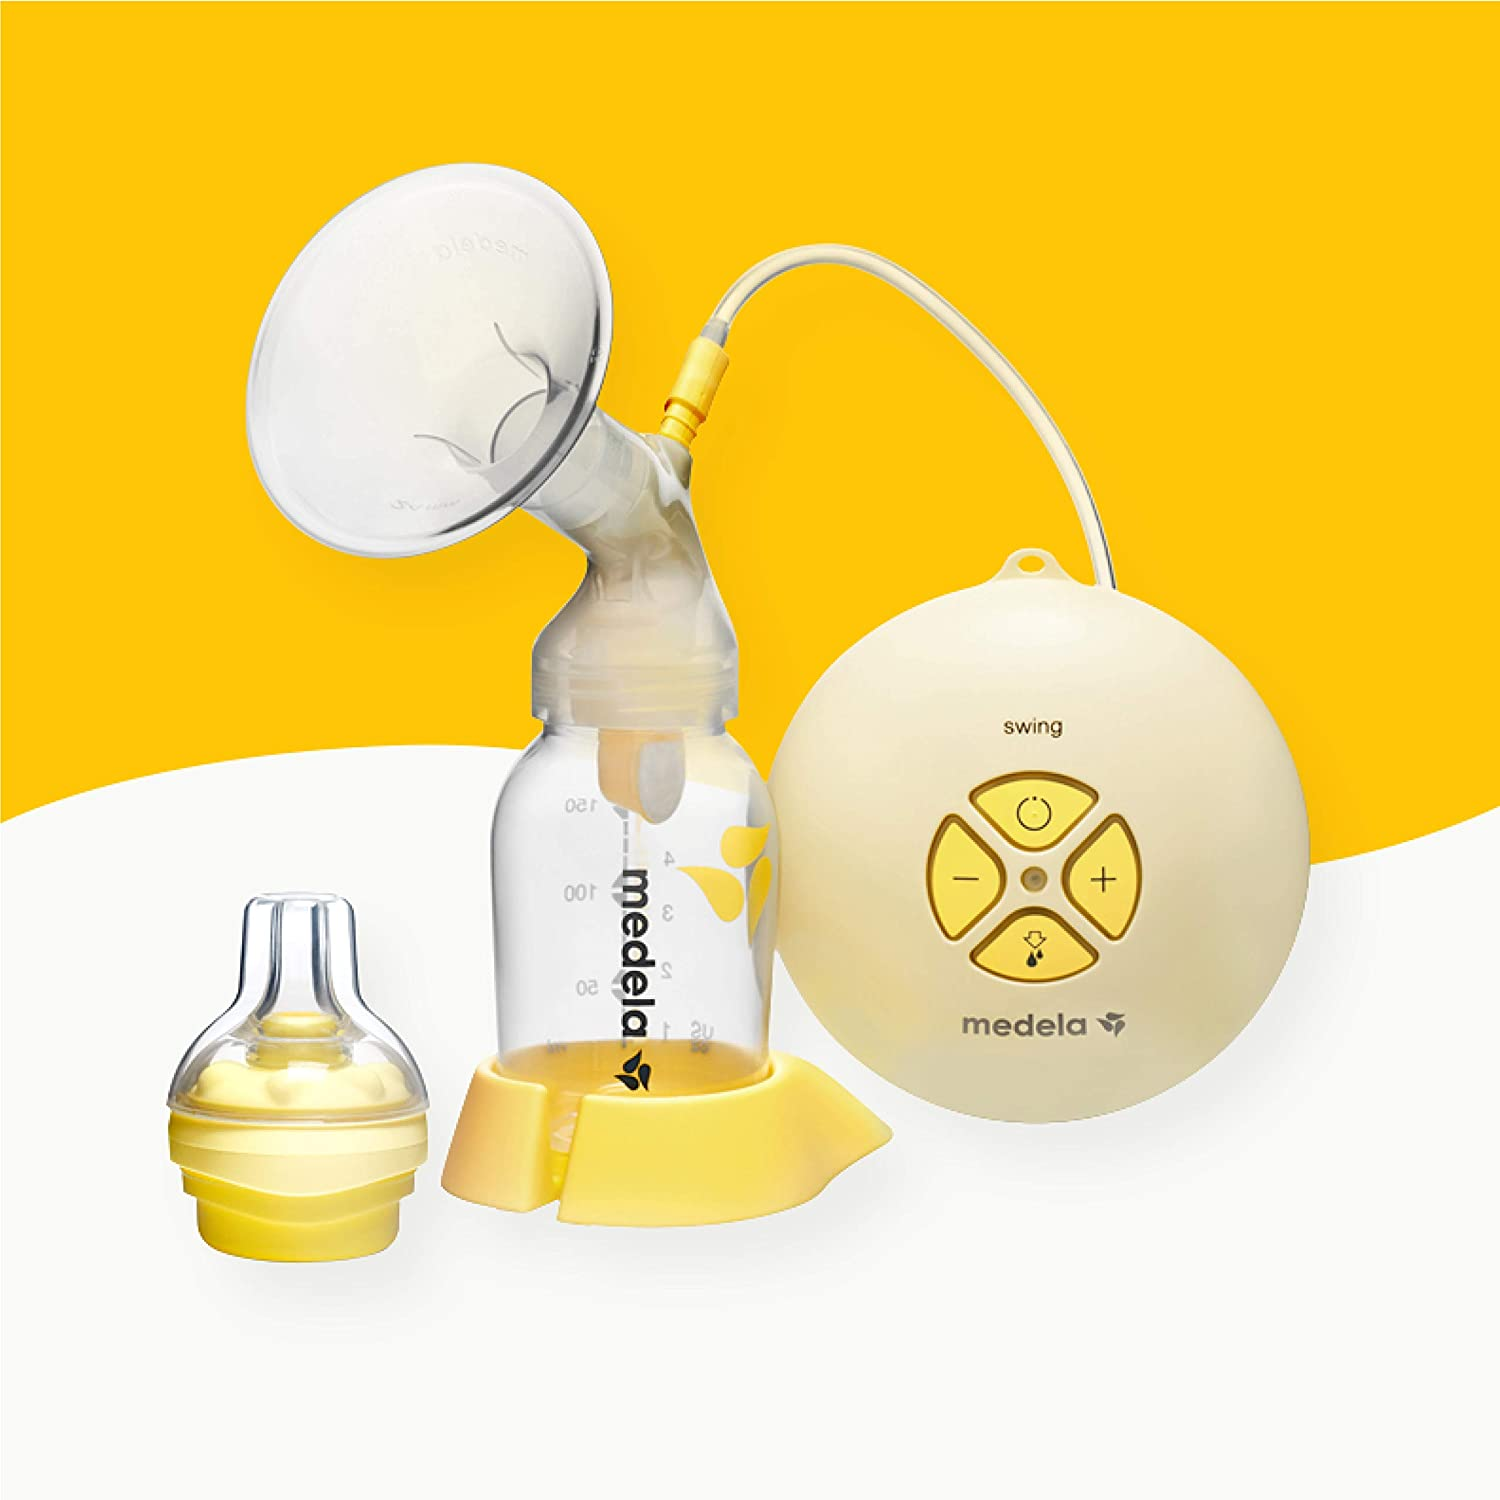 Breast Pump Medela Swing - Single Electric Breastpump 67050 imotomasami20120511